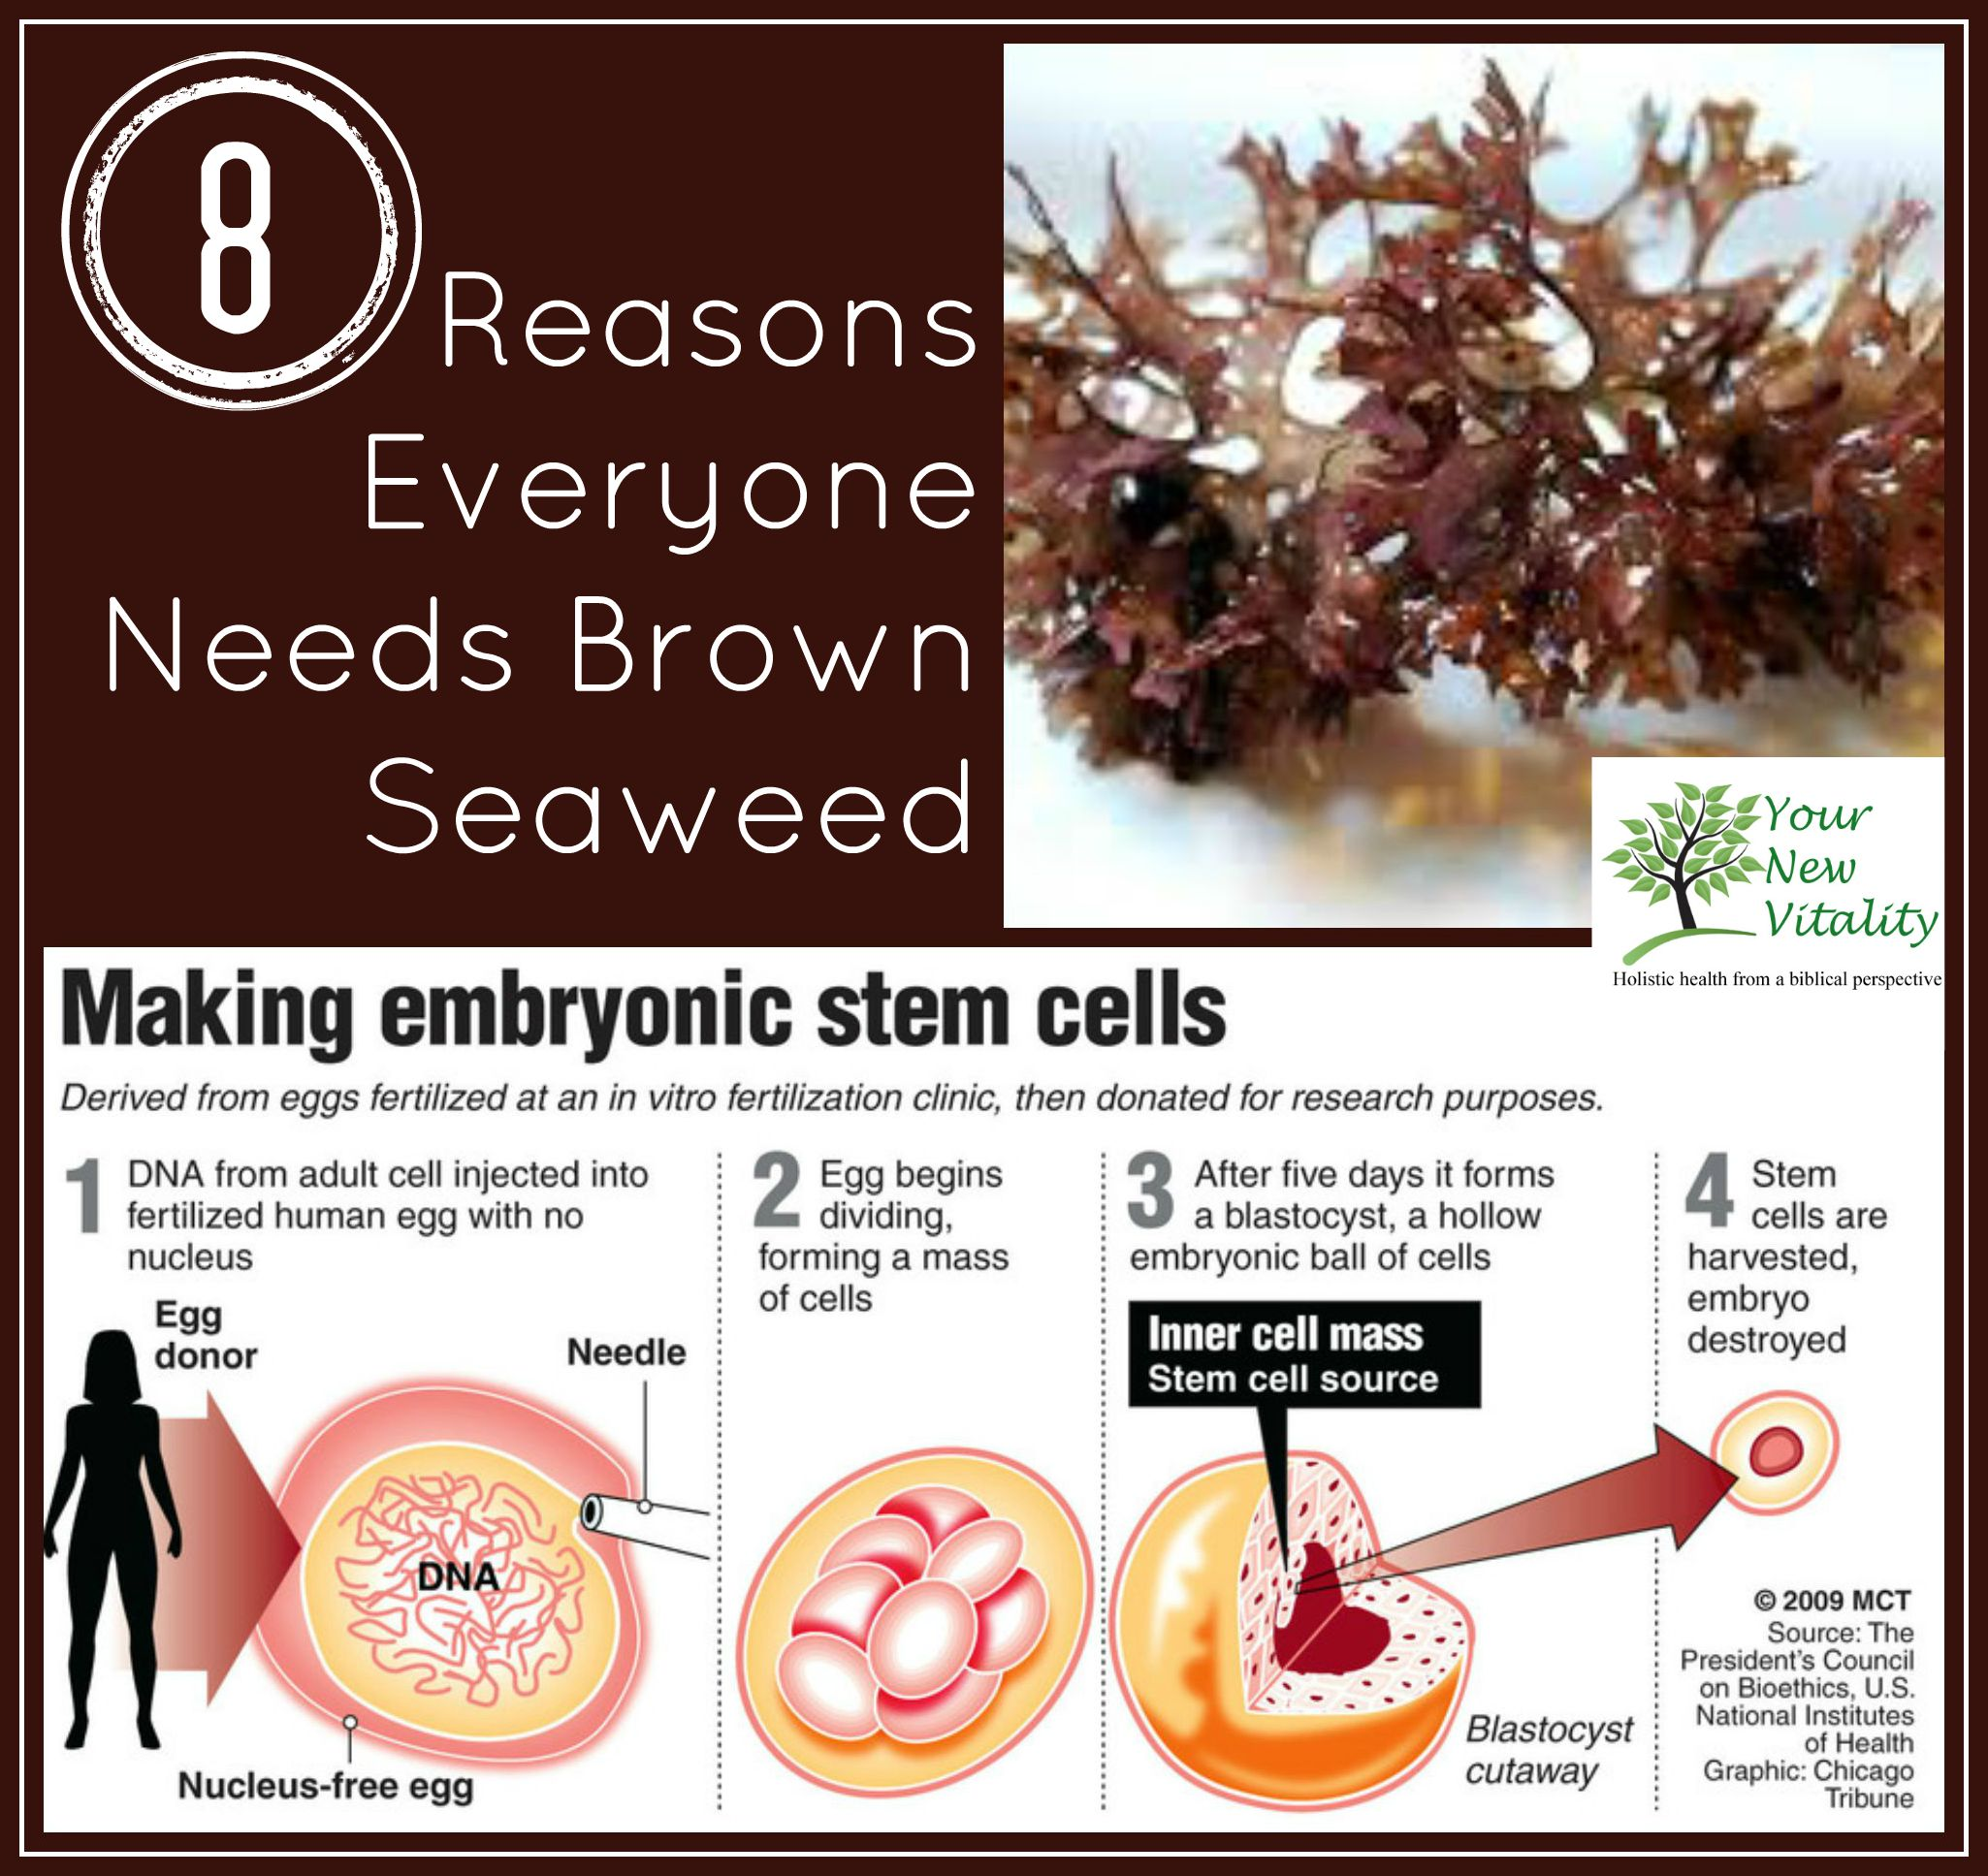 8 Reaons Everyone Needs Brown Seaweed